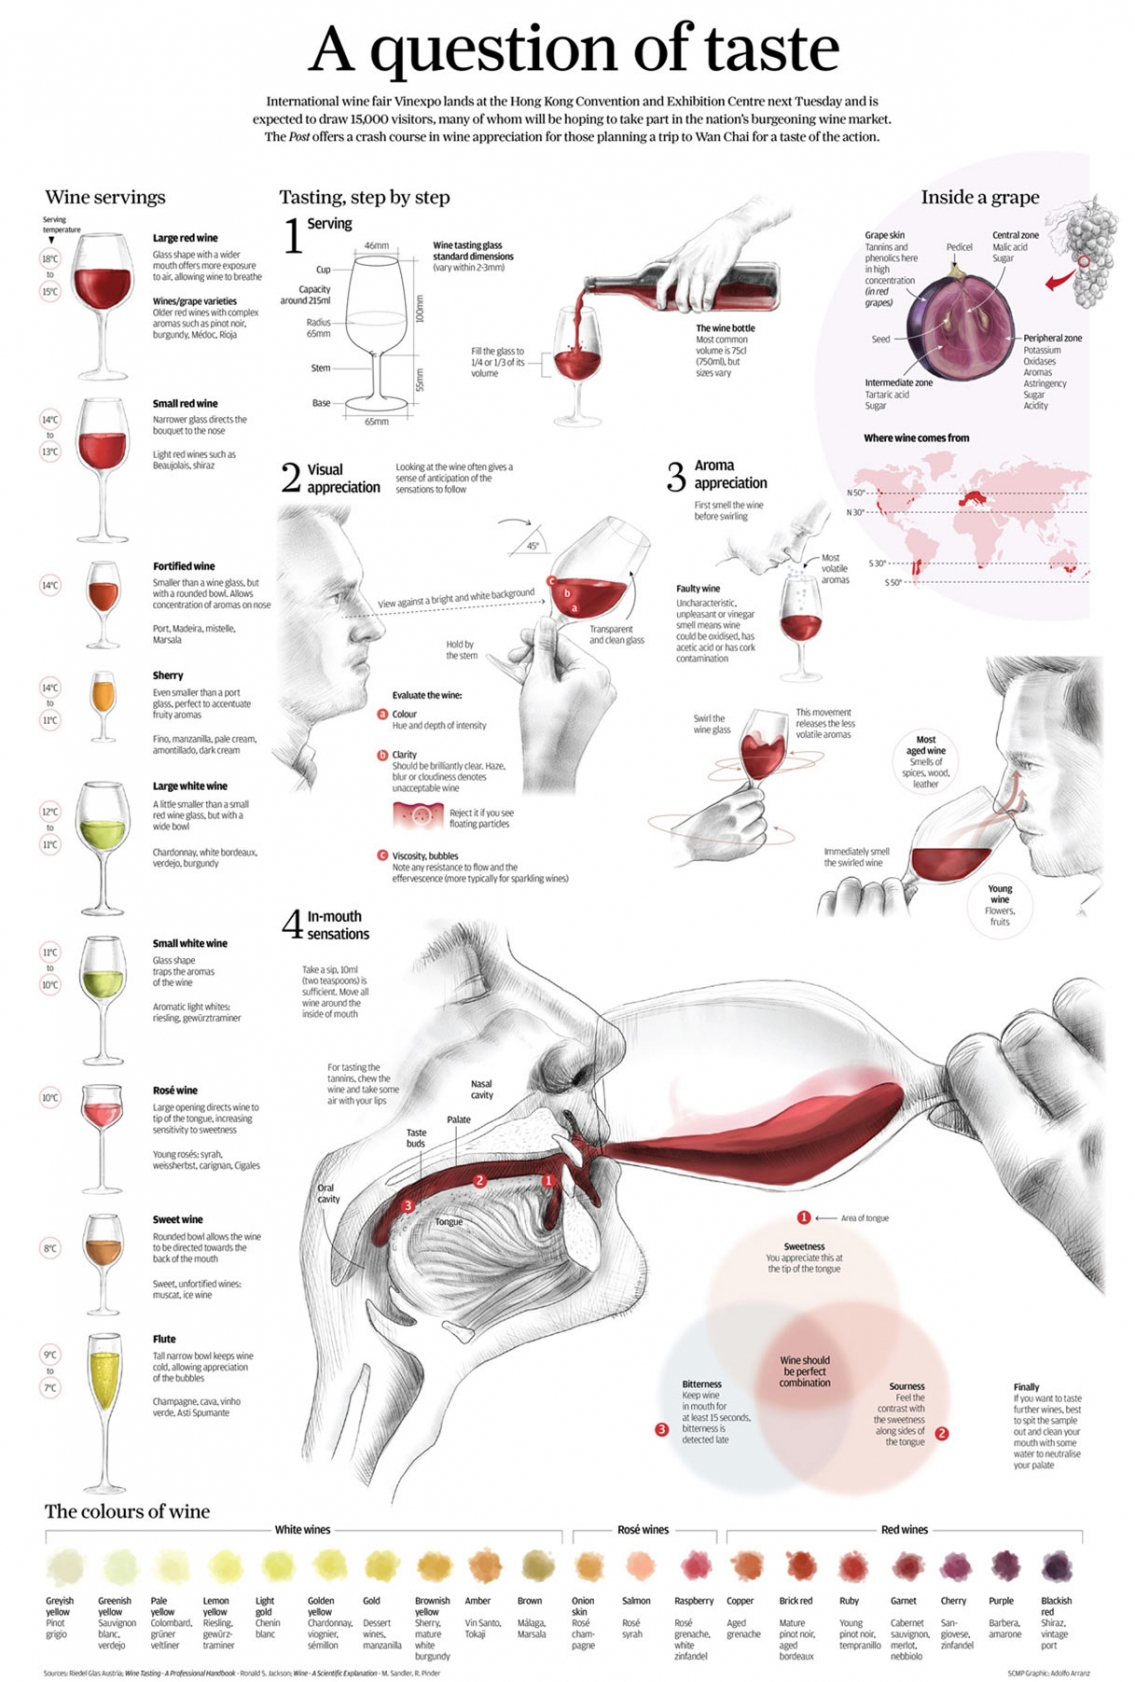 The Connoisseur Way to Tasting Wine Infographic